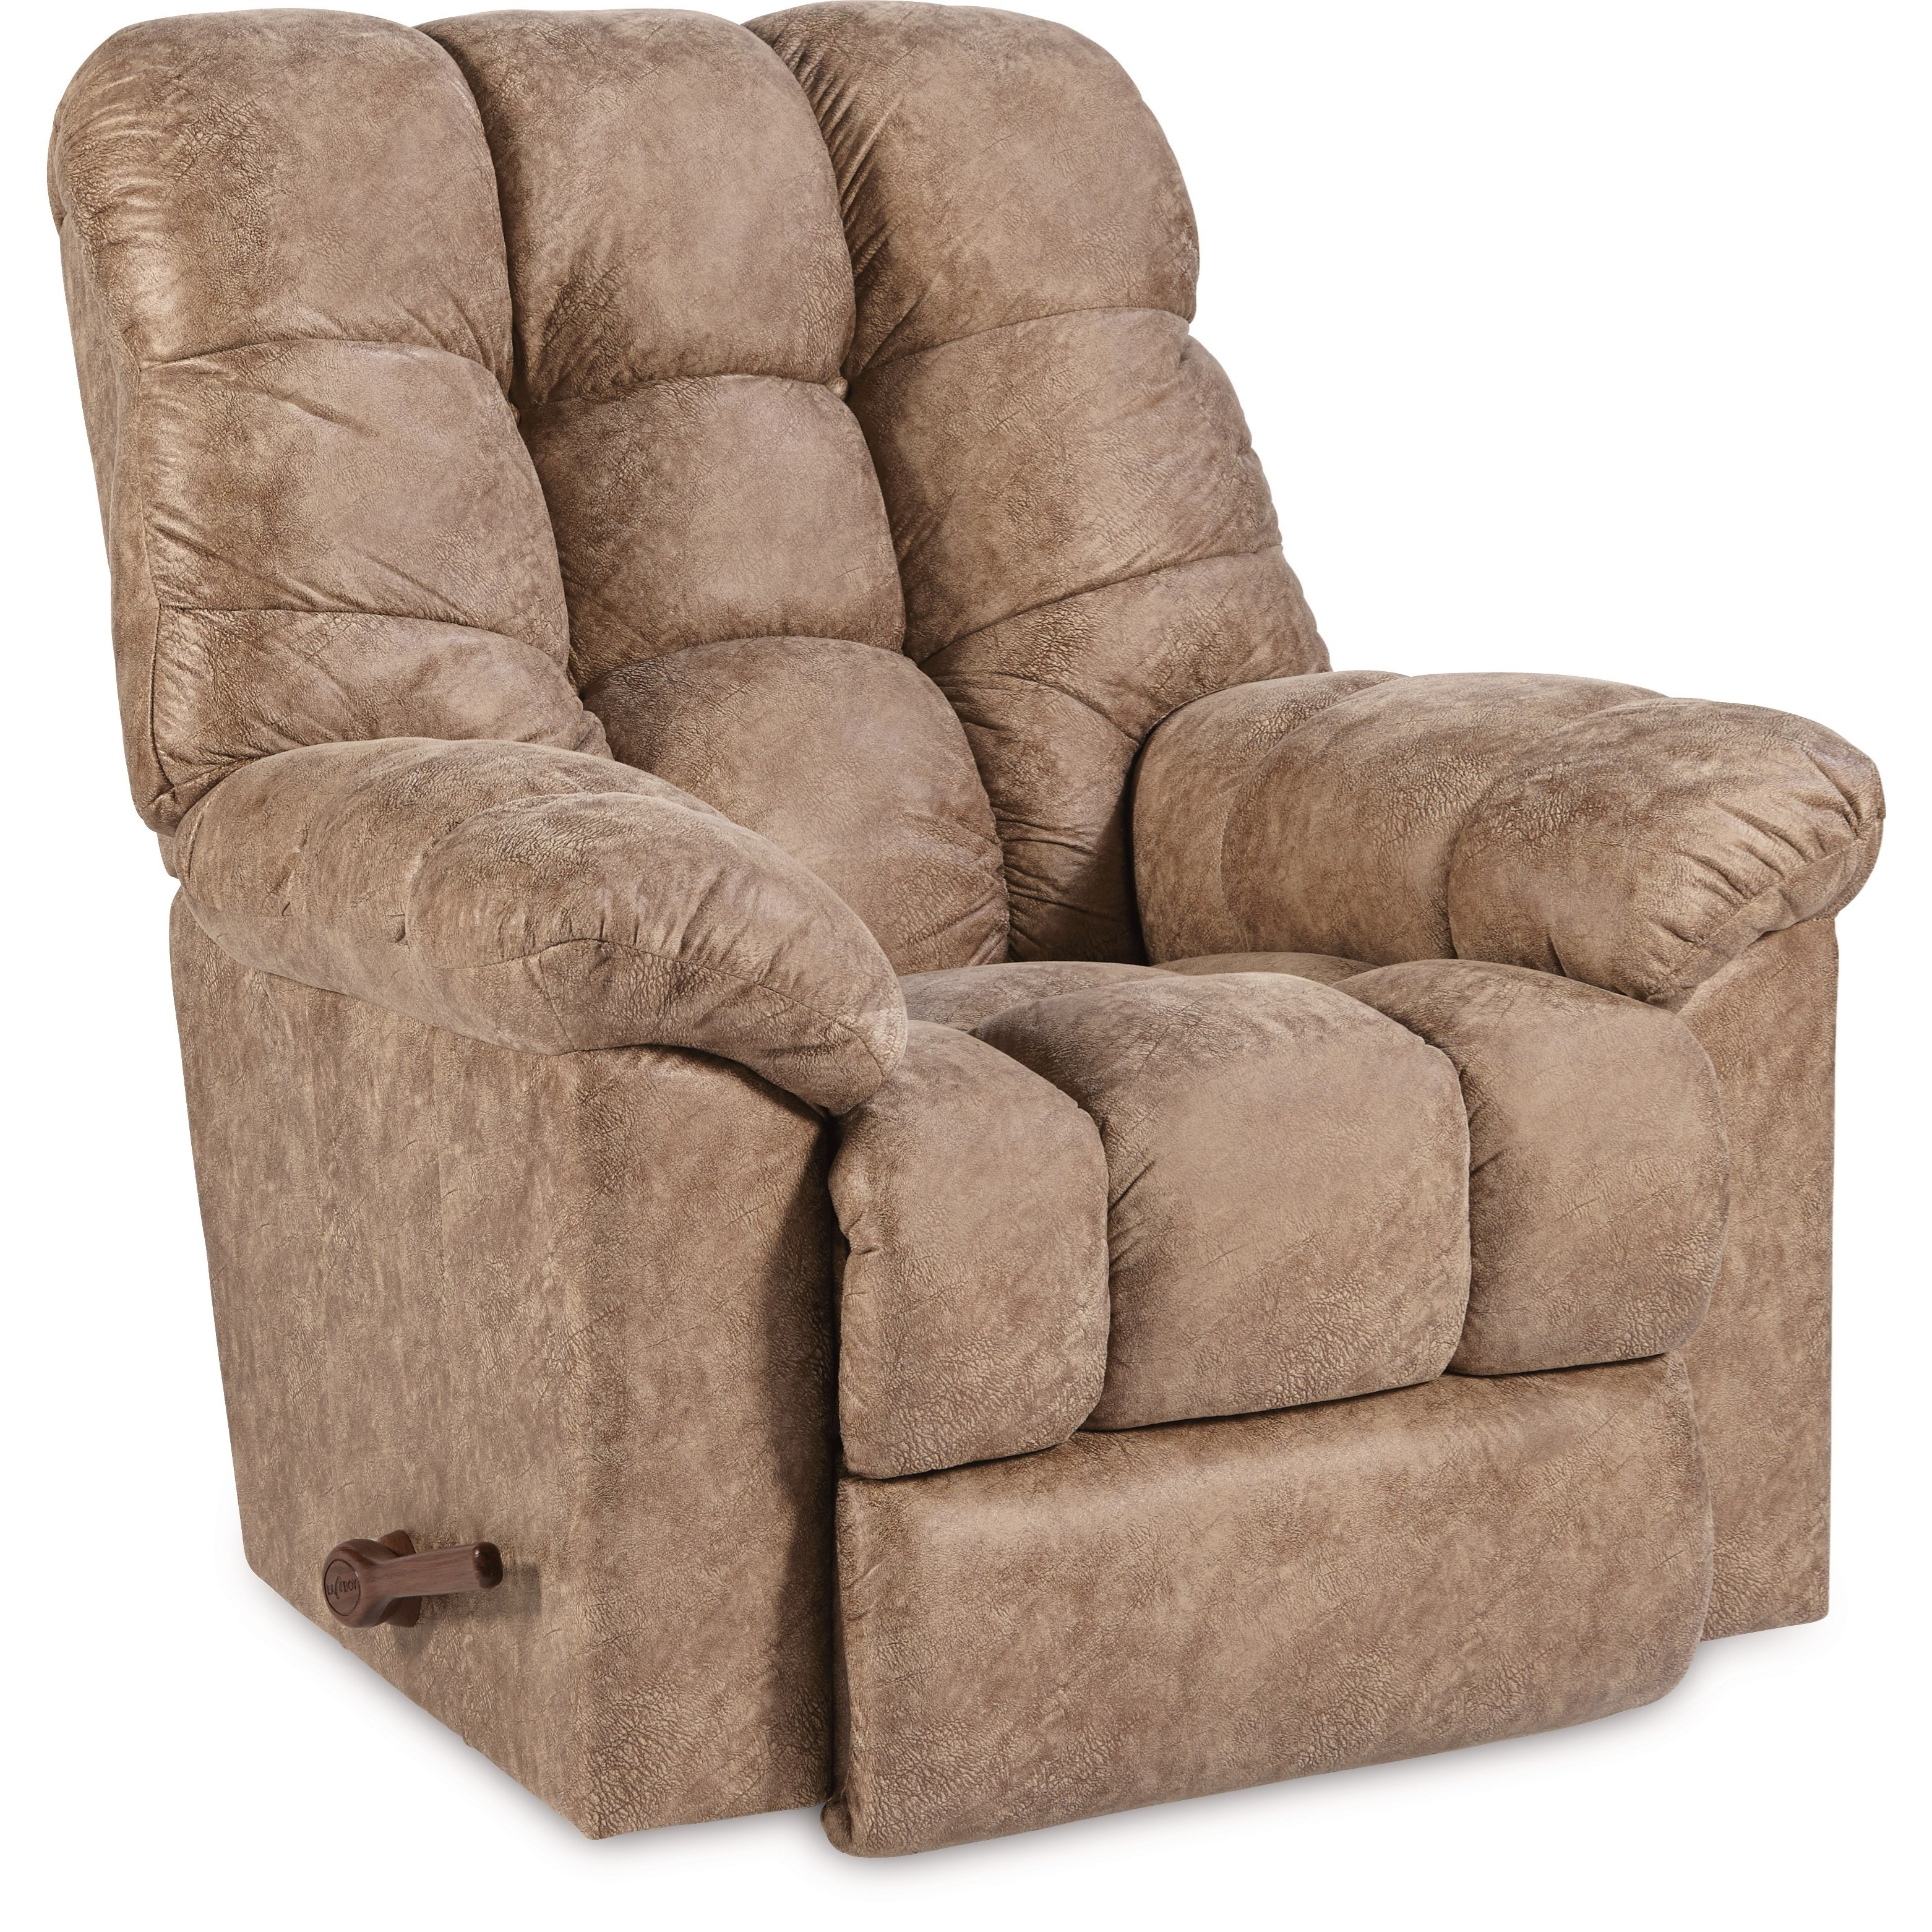 Gibson Rocking Recliner by La-Z-Boy at Bennett's Furniture and Mattresses